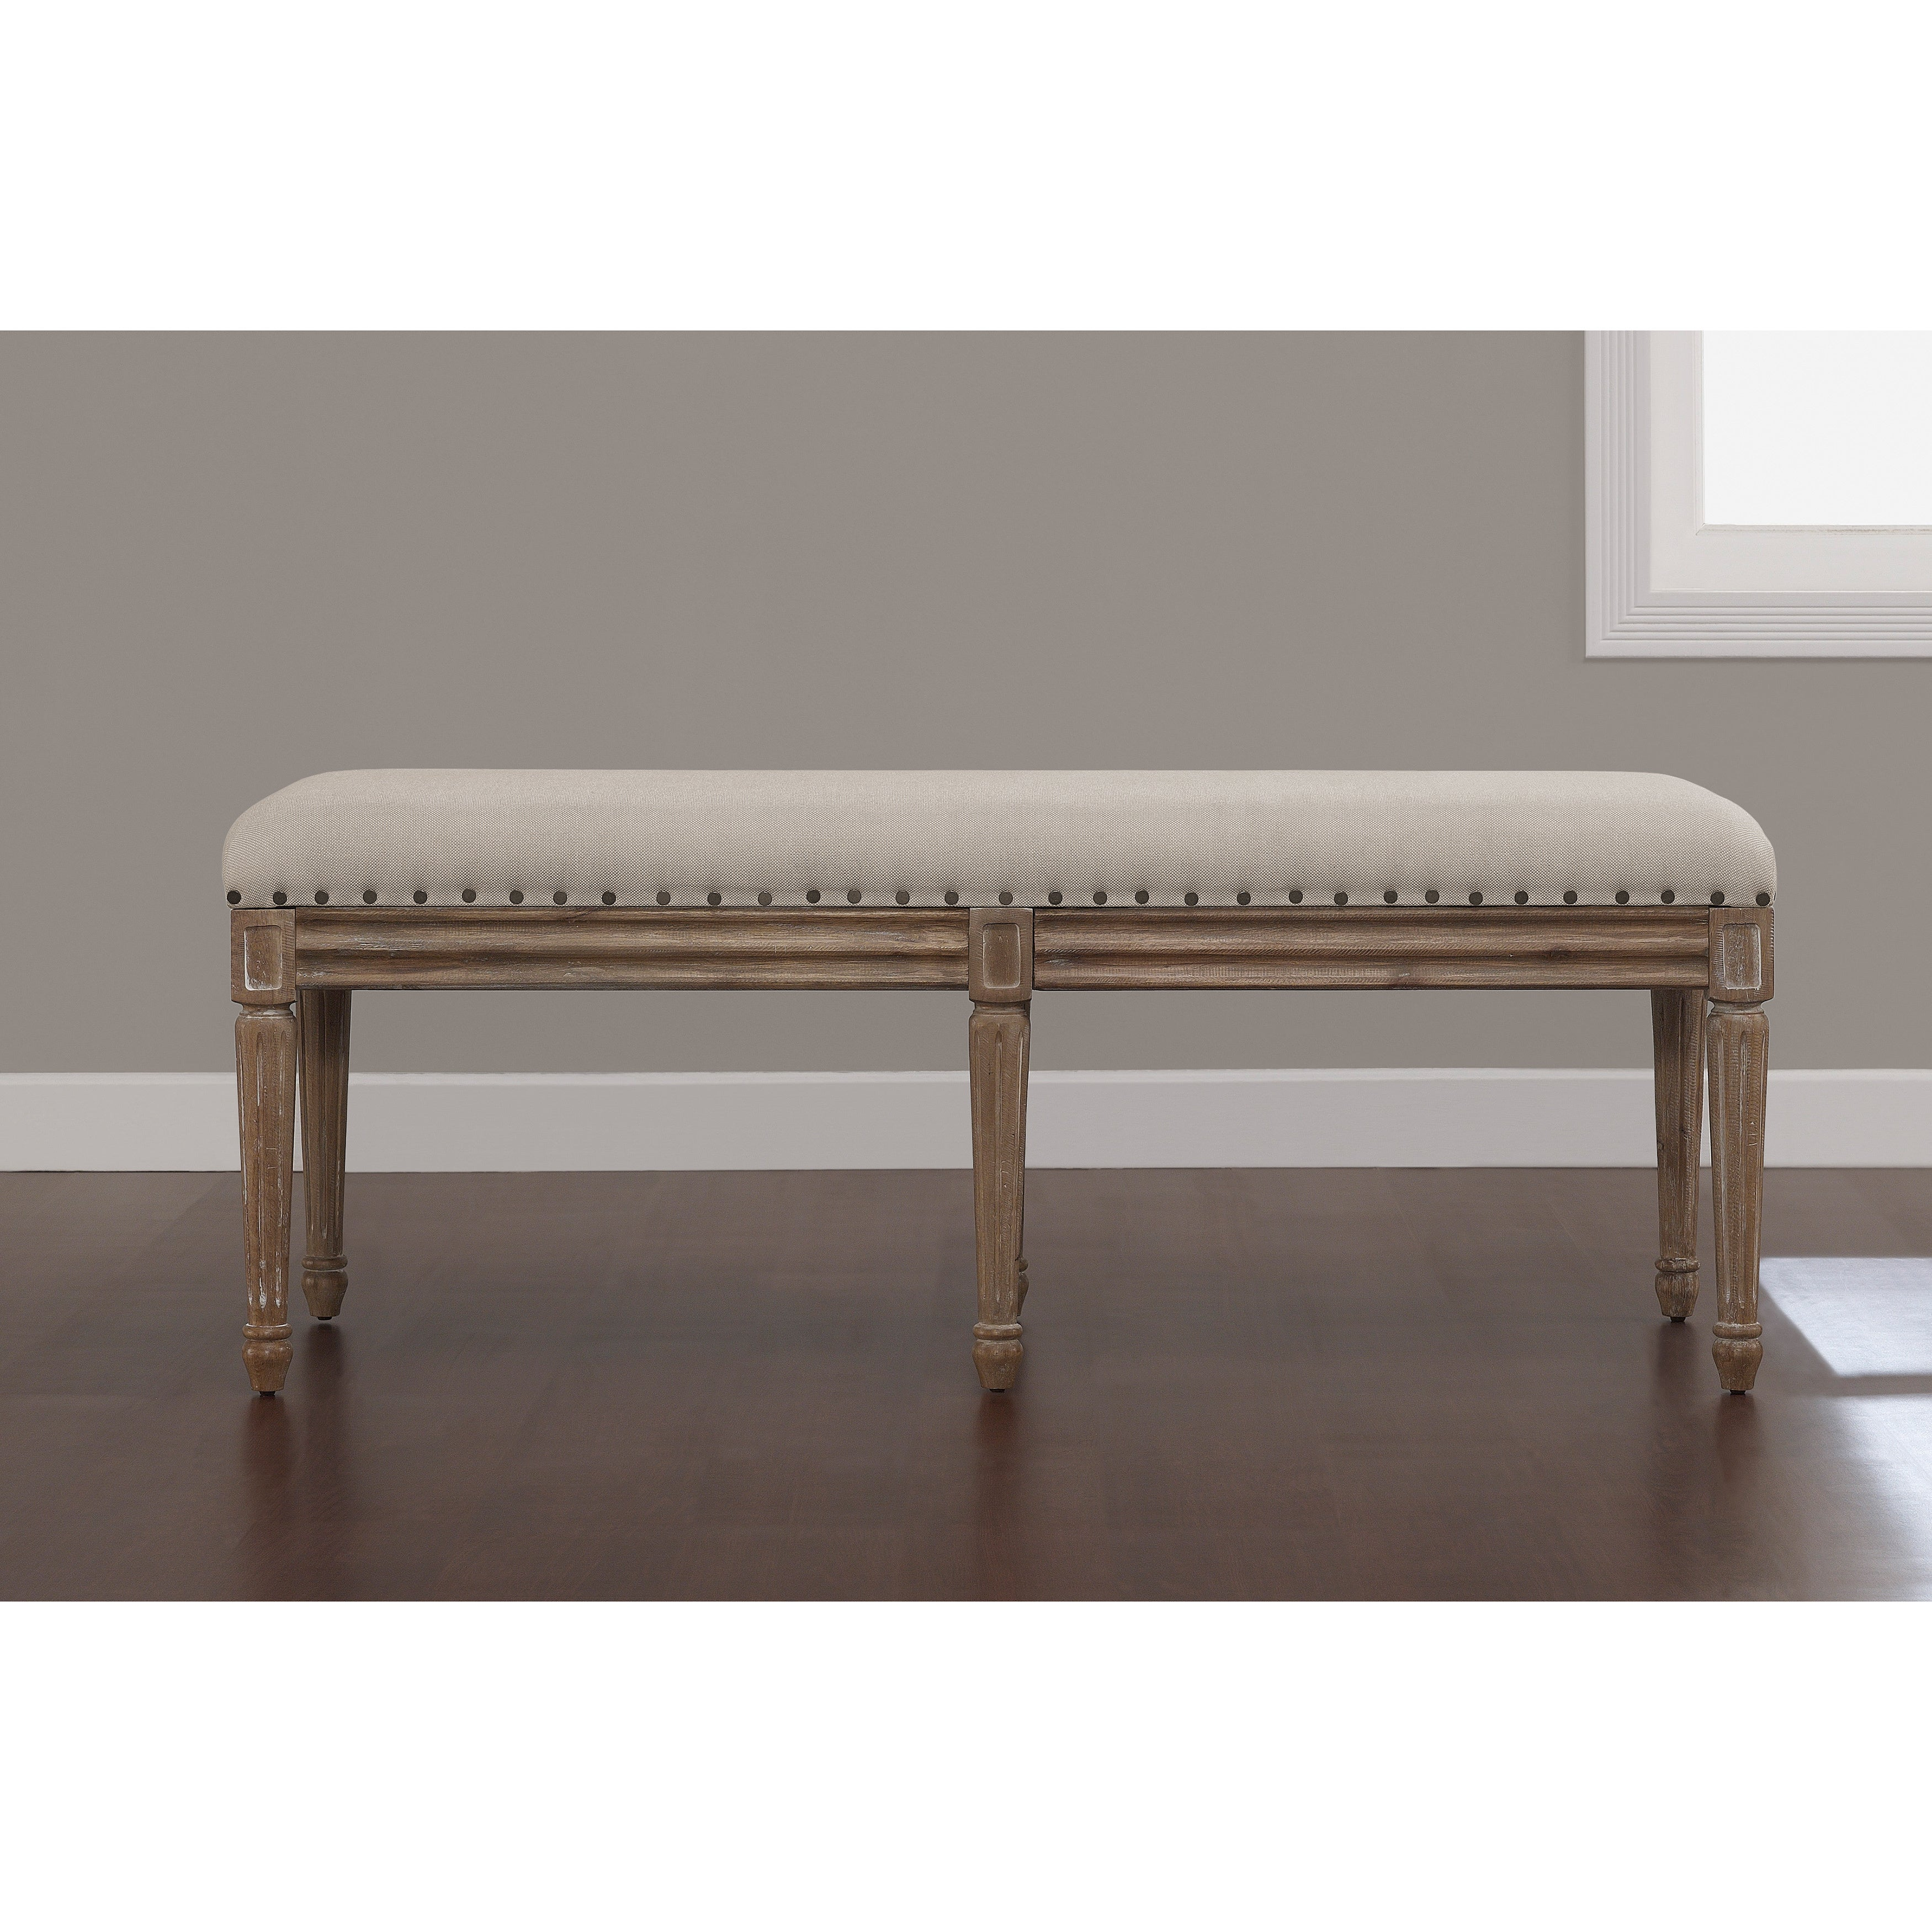 Ordinaire Shop Stones U0026 Stripes Elements Upholstered Dining Bench   Free Shipping  Today   Overstock.com   8984165